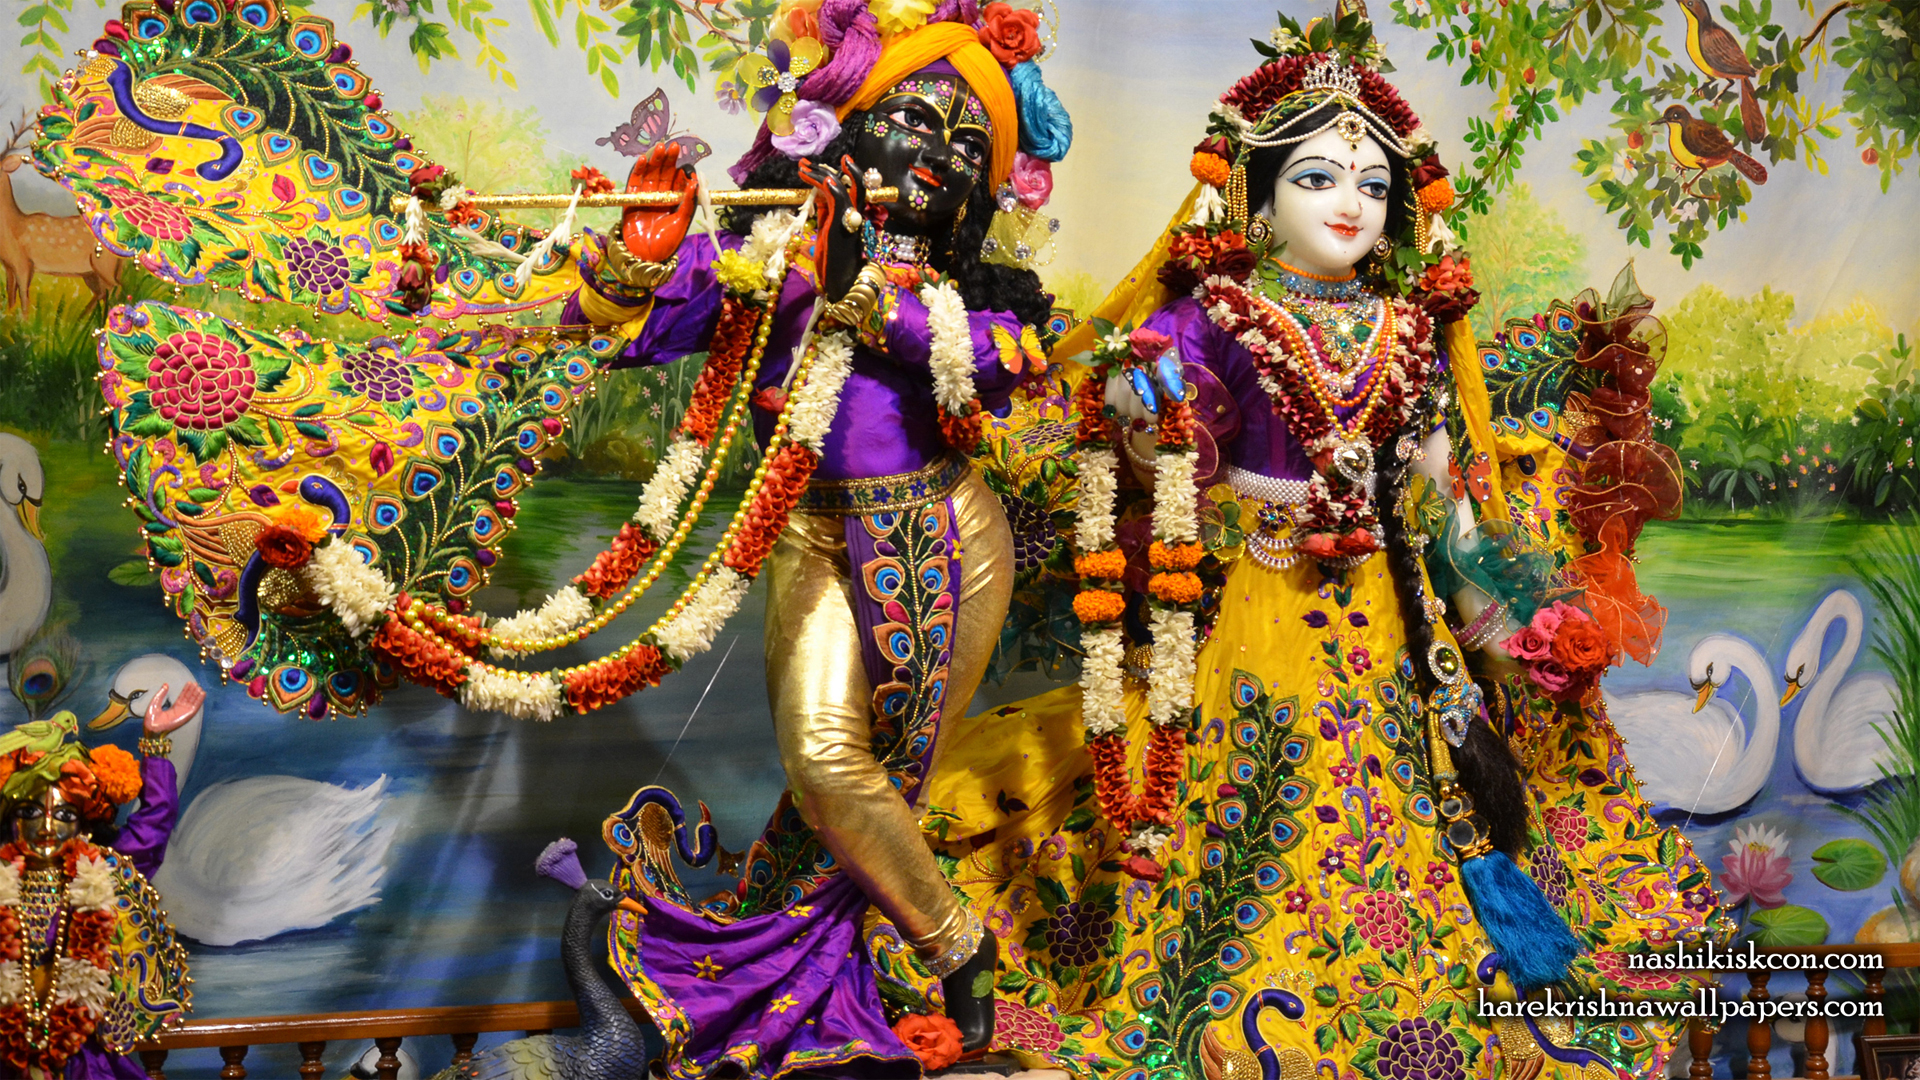 Sri Sri Radha Madan Gopal Wallpaper (001) Size 1920x1080 Download